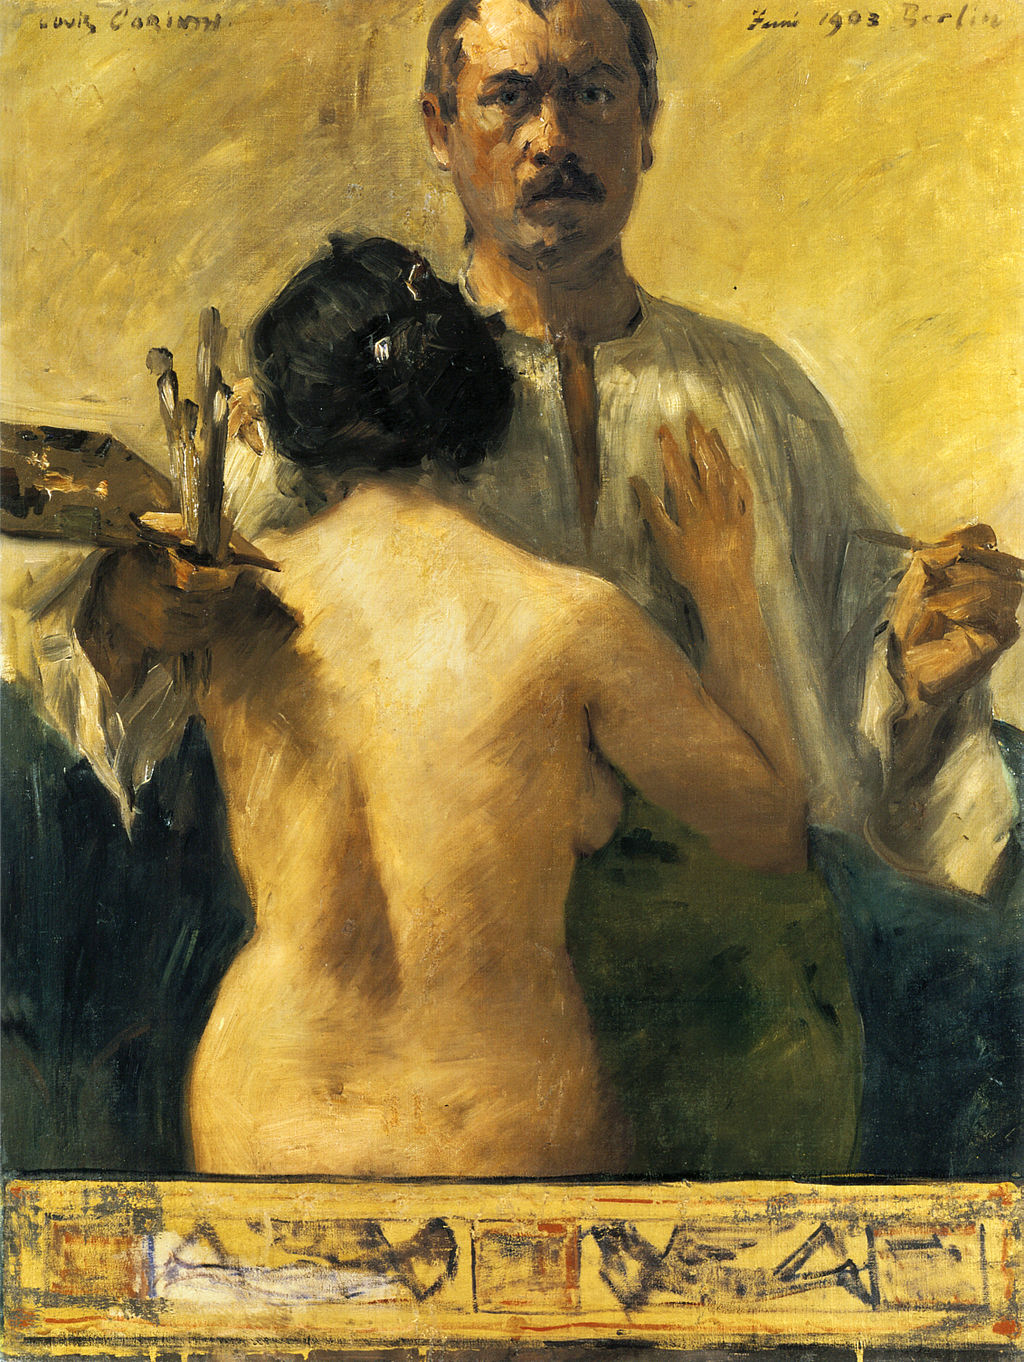 Self-portrait with Model by Lovis Corinth